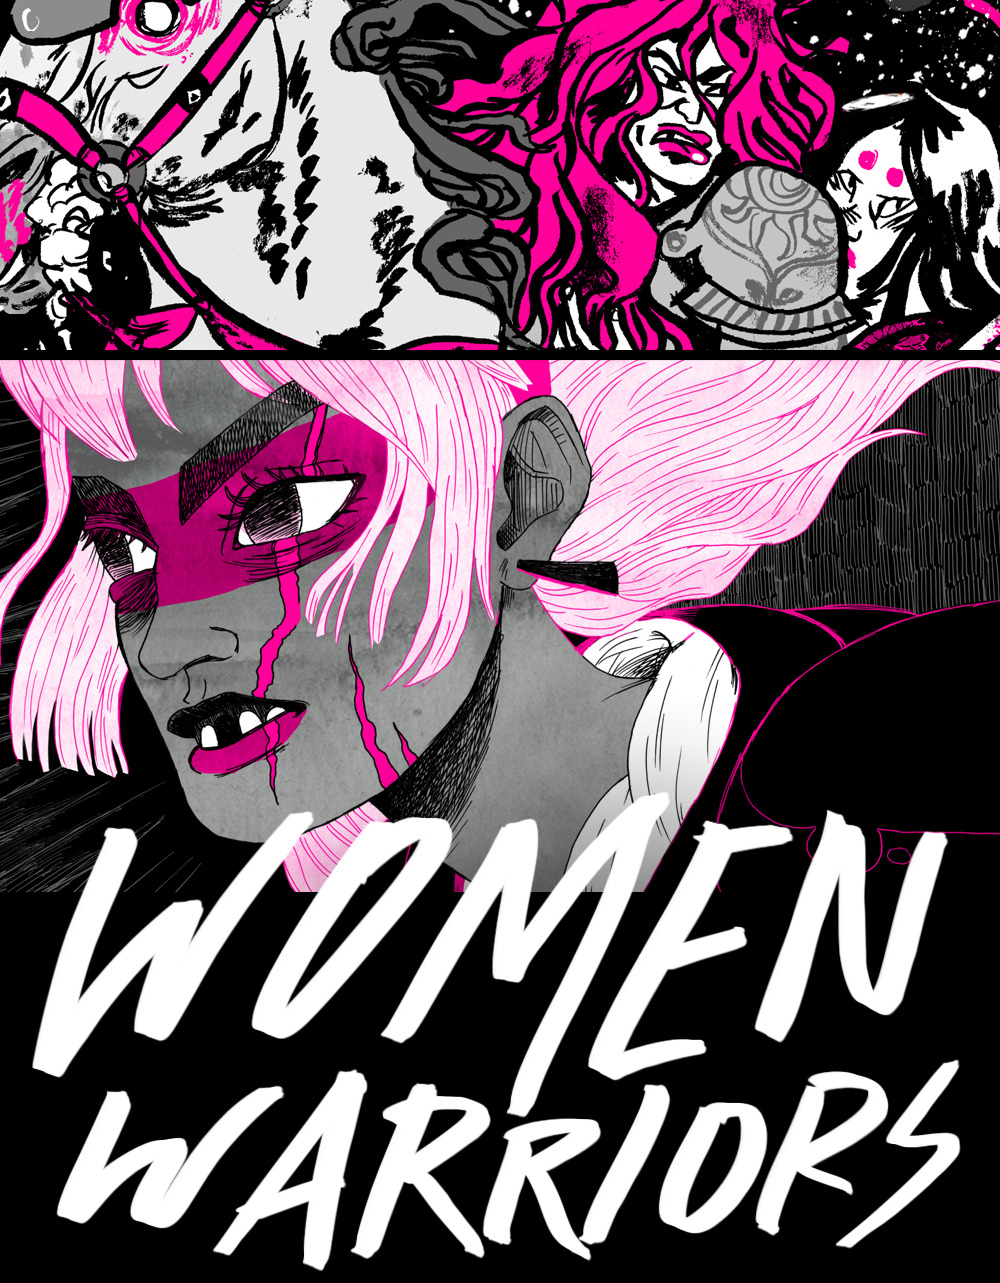 "krismukai:  roxievizcarra:  This 2nd edition run of the Women Warriors zine/art book is a whopping 8.5 x 11 magazine size and boasts 52 pages of BLACK, WHITE, and MAGENTA artwork by the following 35 insanely awesome artists:  Domitille Collardey Courtney Bernard Jen Wang Shannon May Disa Wallander Joanna Krótka Nicole Miles Nick Iluzada Heather Danforth Rachel E. Morris Cathy G. Johnson Jimmy Giegerich Anthony Macbain Kyla Vanderklugt Christina Barrera Kyle Fewell Julia Scott Andrea Kalfas Sloane Leong Zach Hazard Vaupen Daniel Krall Sam Bosma Roxie Vizcarra Hannah K. Lee Chris Visions Daniel ""Locus"" Allen Kali Ciesemier Abby Boeh Nick Sumida Richie Pope Coleman Engle Babs Tarr Katie Turner Kris Mukai Mike Bear  WOW THAT'S A LOT OF AWESOME PEOPLE. Also, the first 50 people who pre-order the zine will get a little surprise gift for freeeee! NOW AVAILABLE FOR PRE-ORDER ON STORENVY:  WOMENWARRIORS.STORENVY.COM  G-G-G-GET IT."